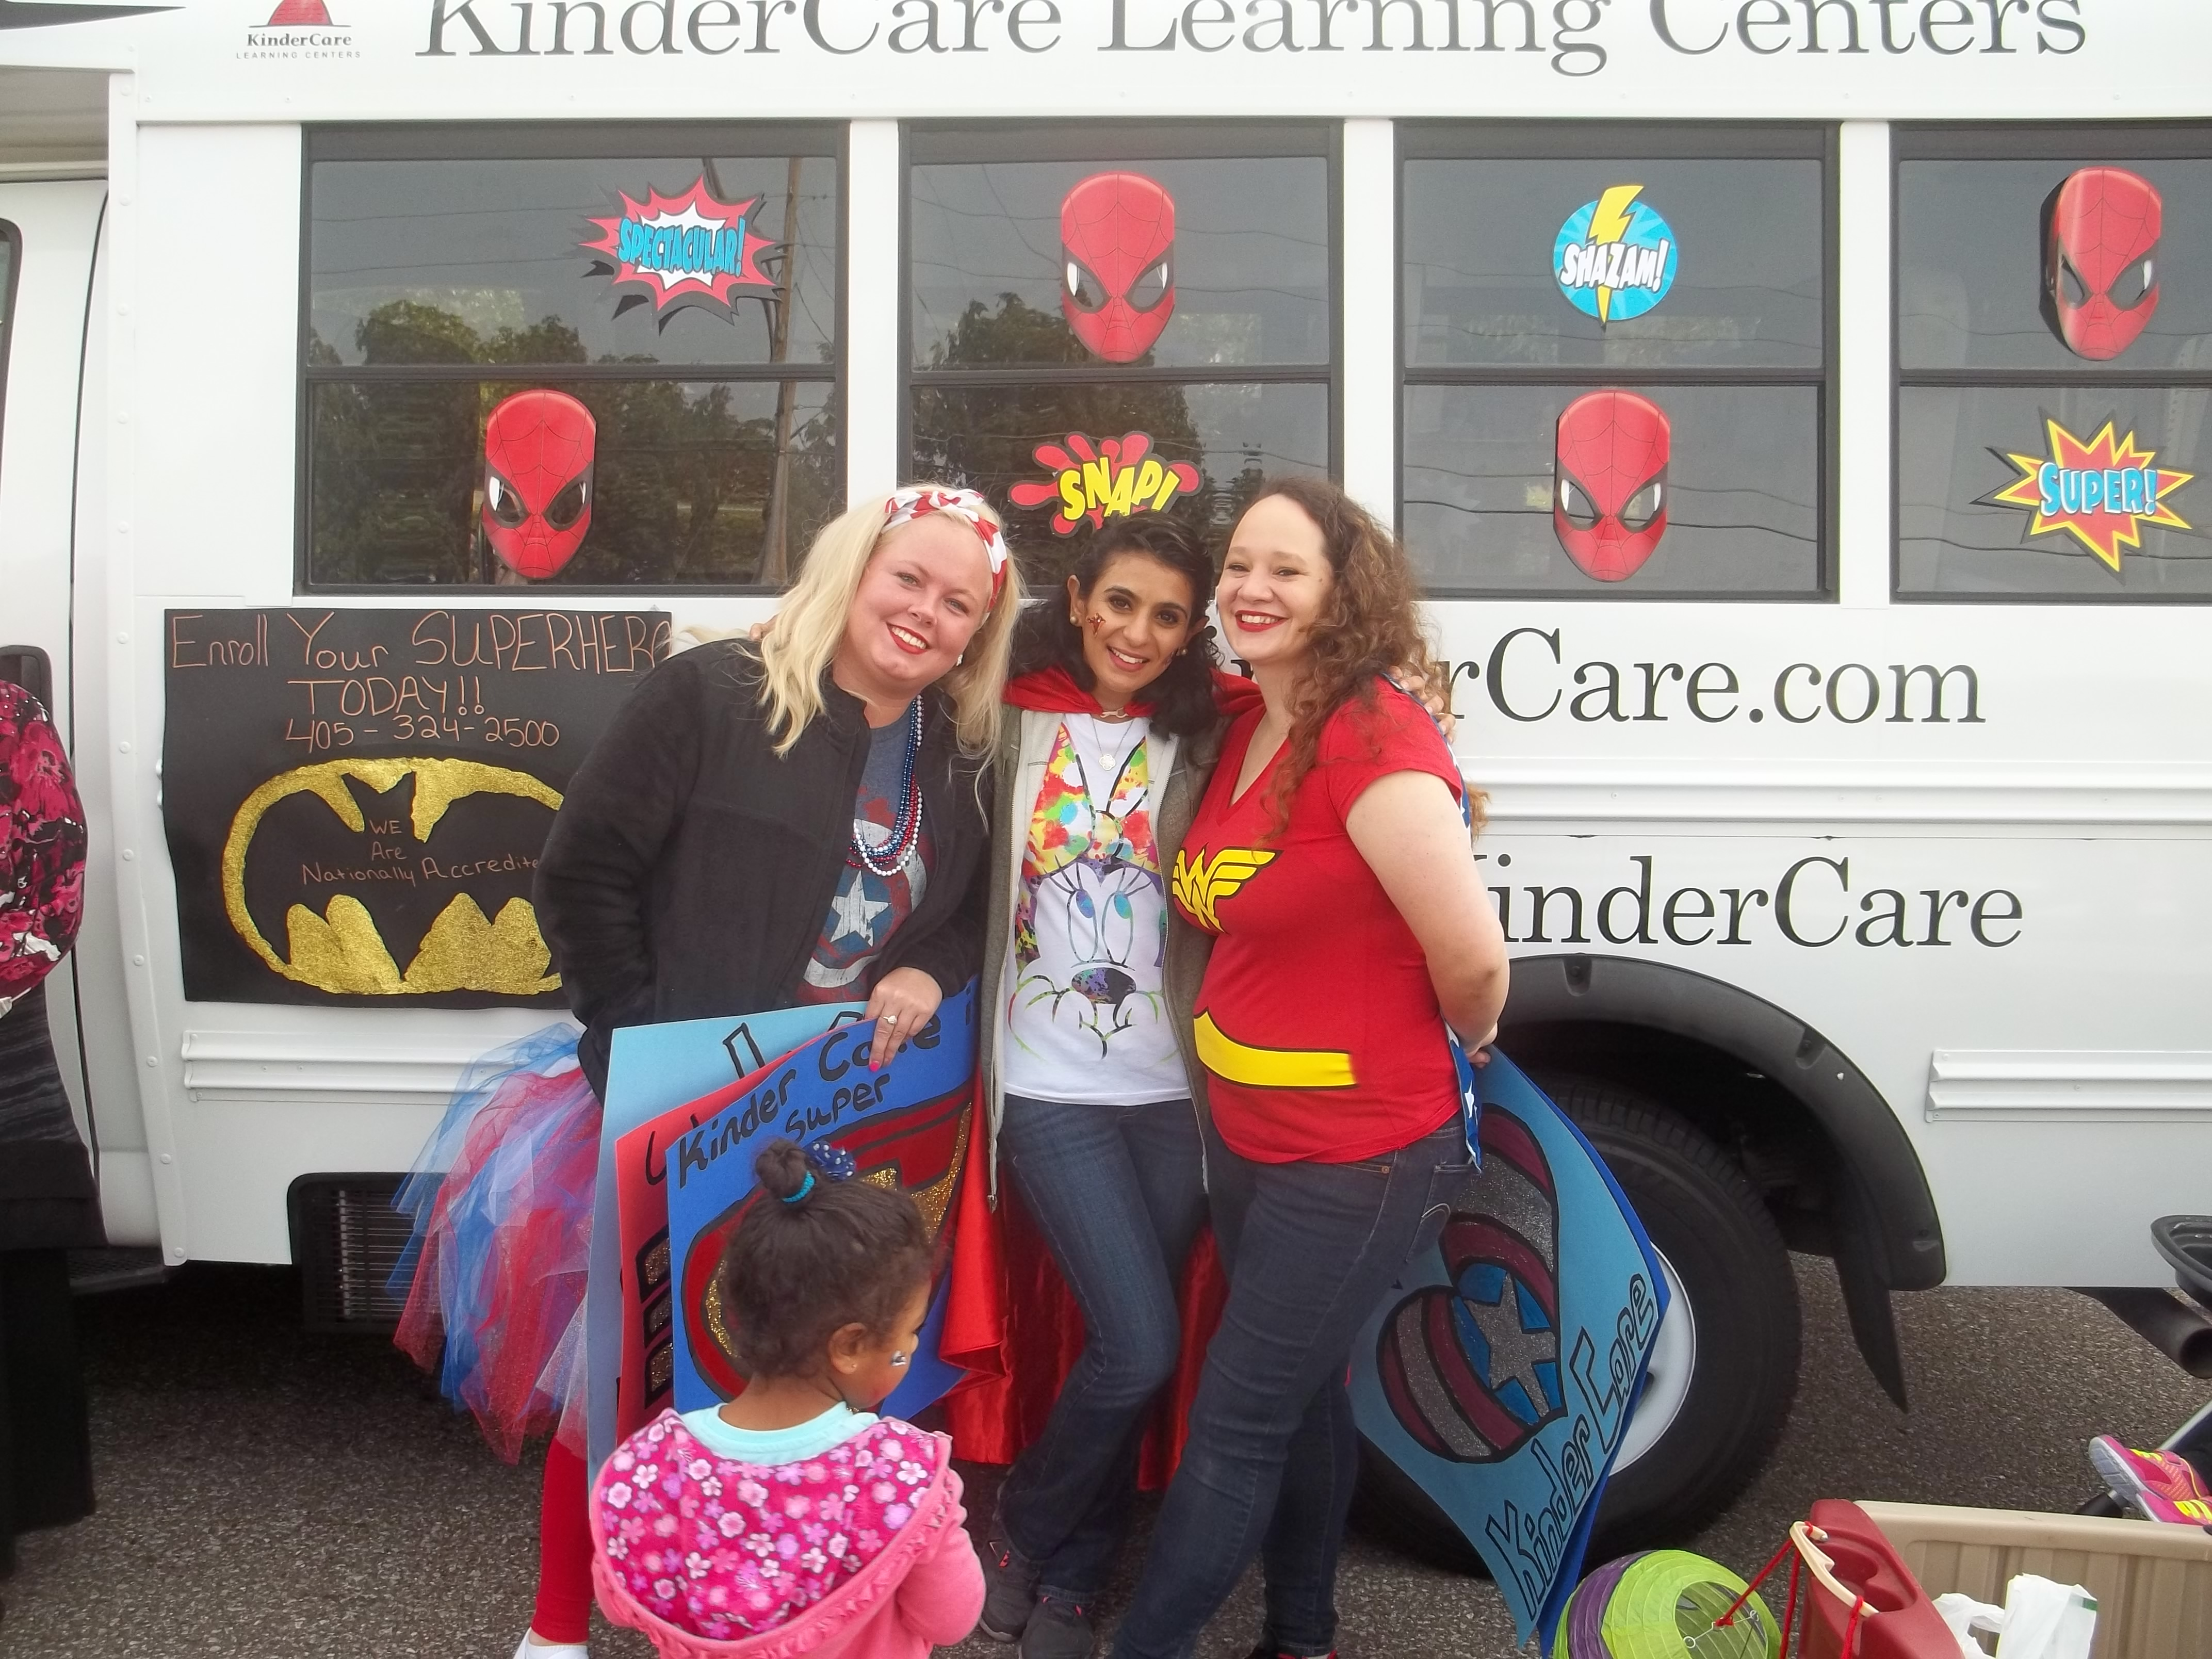 South Mustang Road Kindercare Daycare Preschool Amp Early